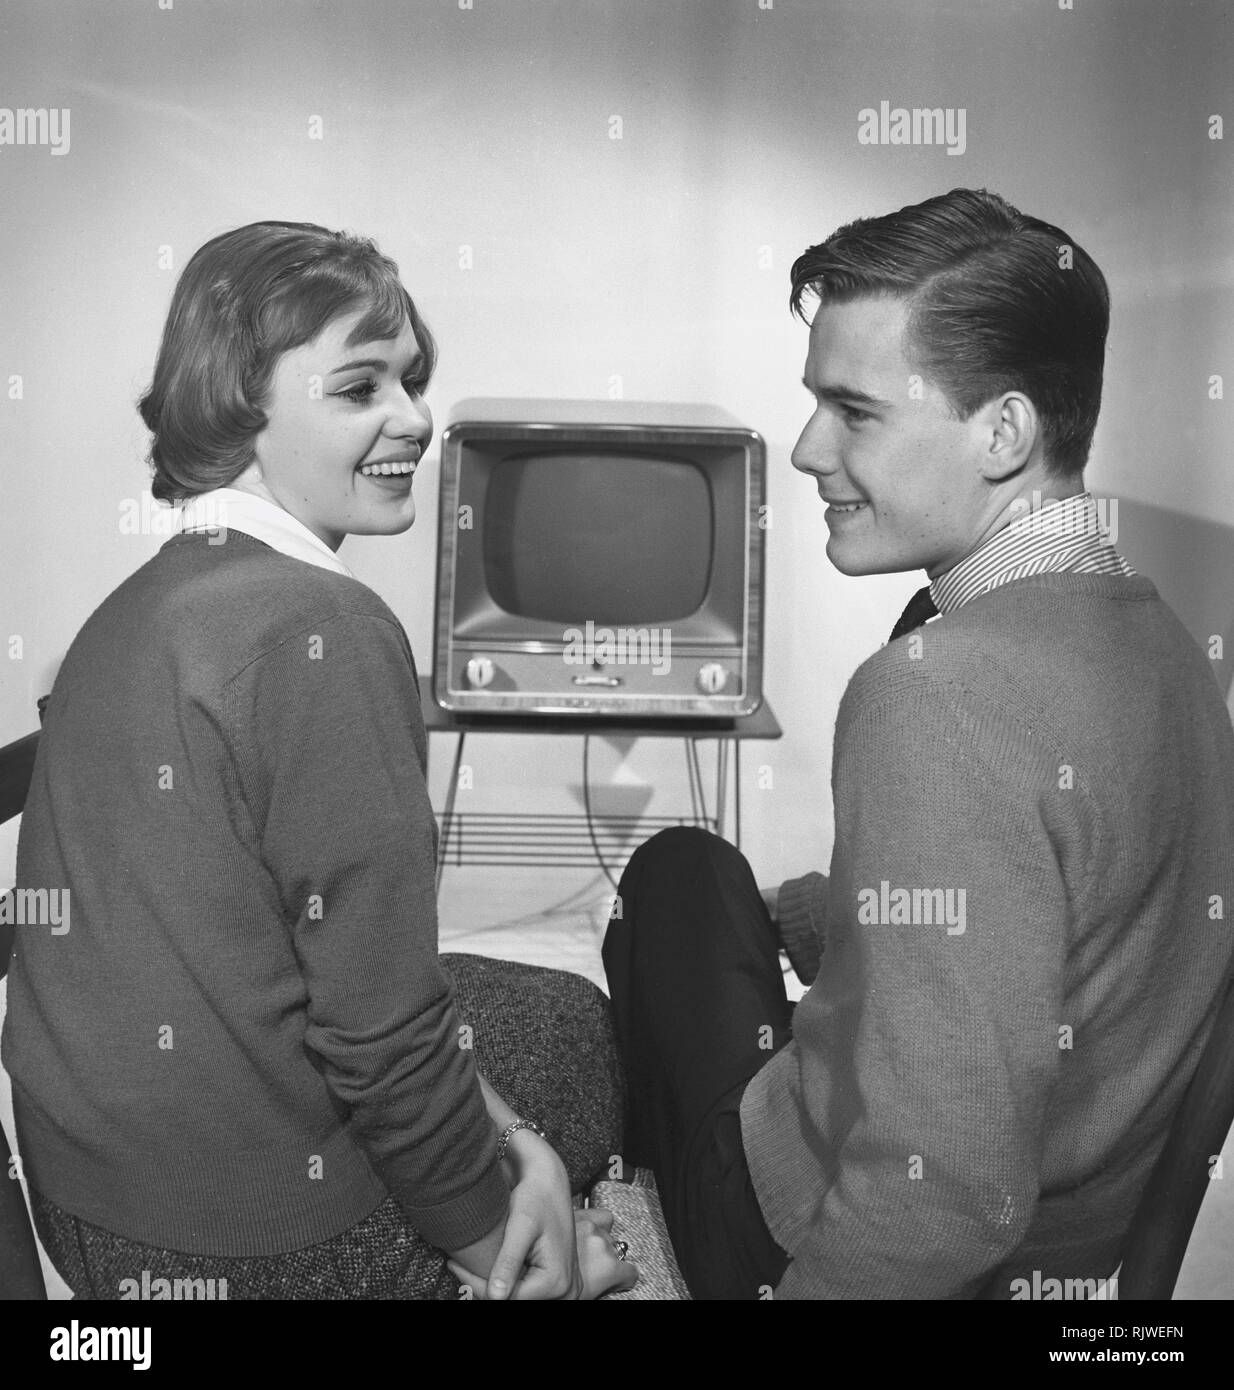 Television in the 1950s. A young couple is pictured sitting in front of a typical 50s television set.  Photo Kristoffersson ref CC93-6. Sweden 1958 - Stock Image